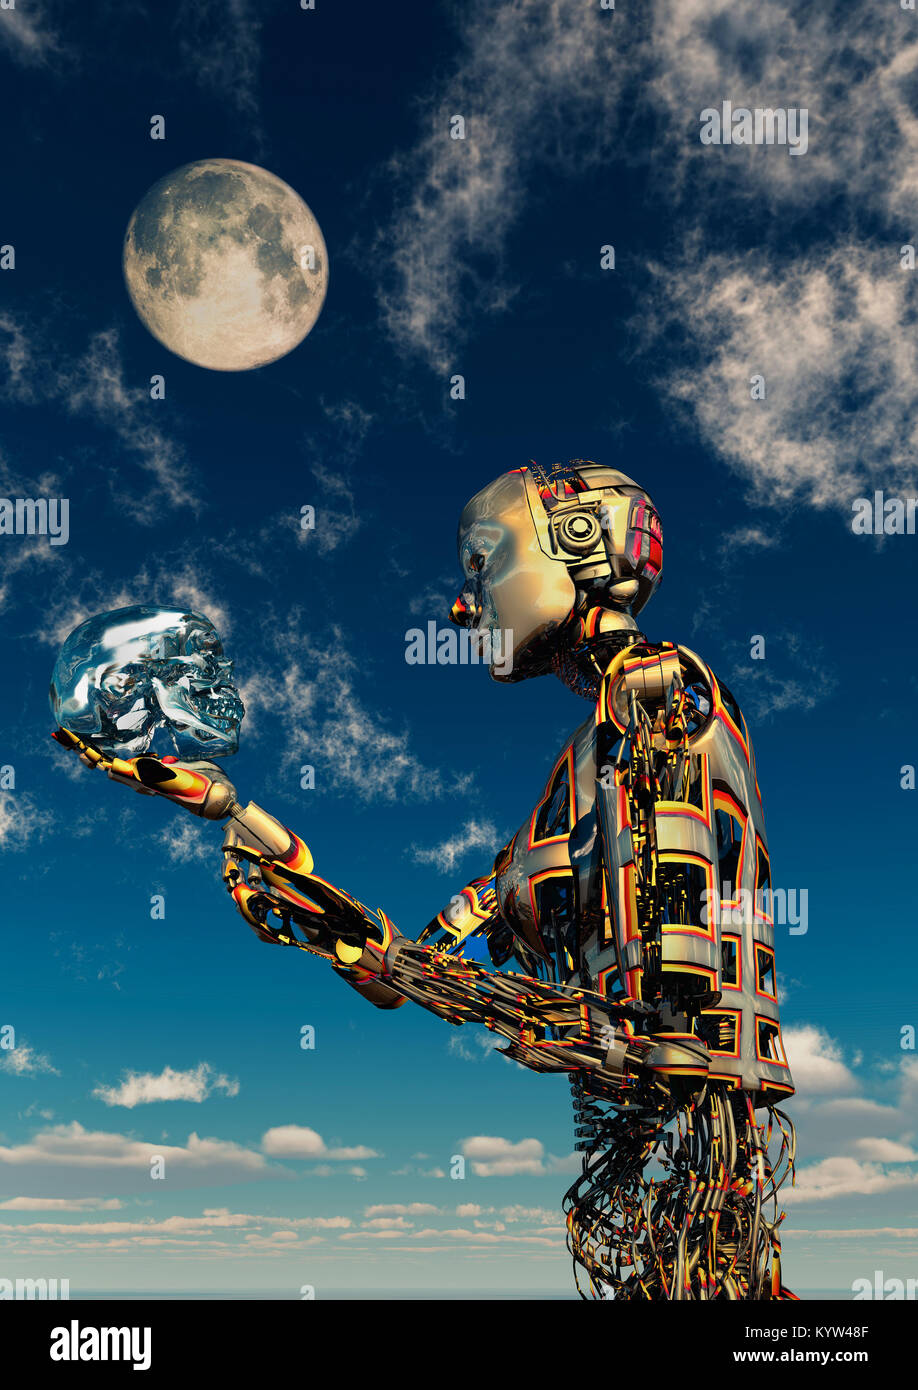 A Crystal Skull In The Hands Of An Android - Stock Image